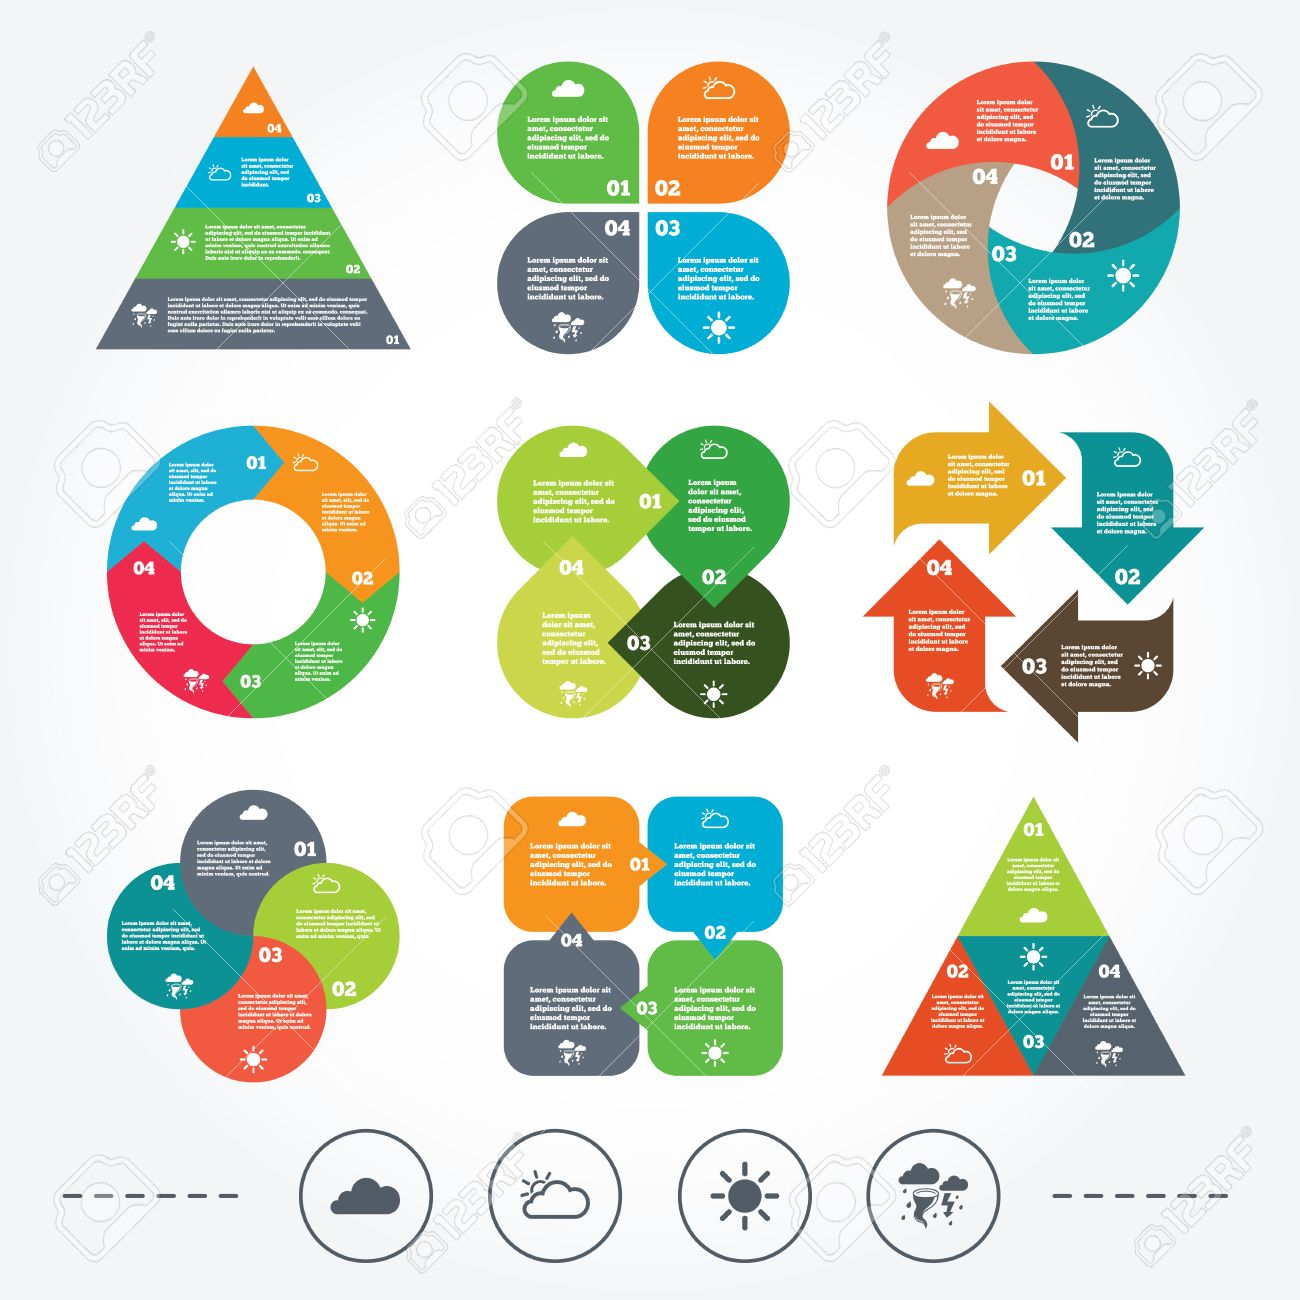 hight resolution of circle and triangle diagram charts weather icons cloud and sun signs storm or